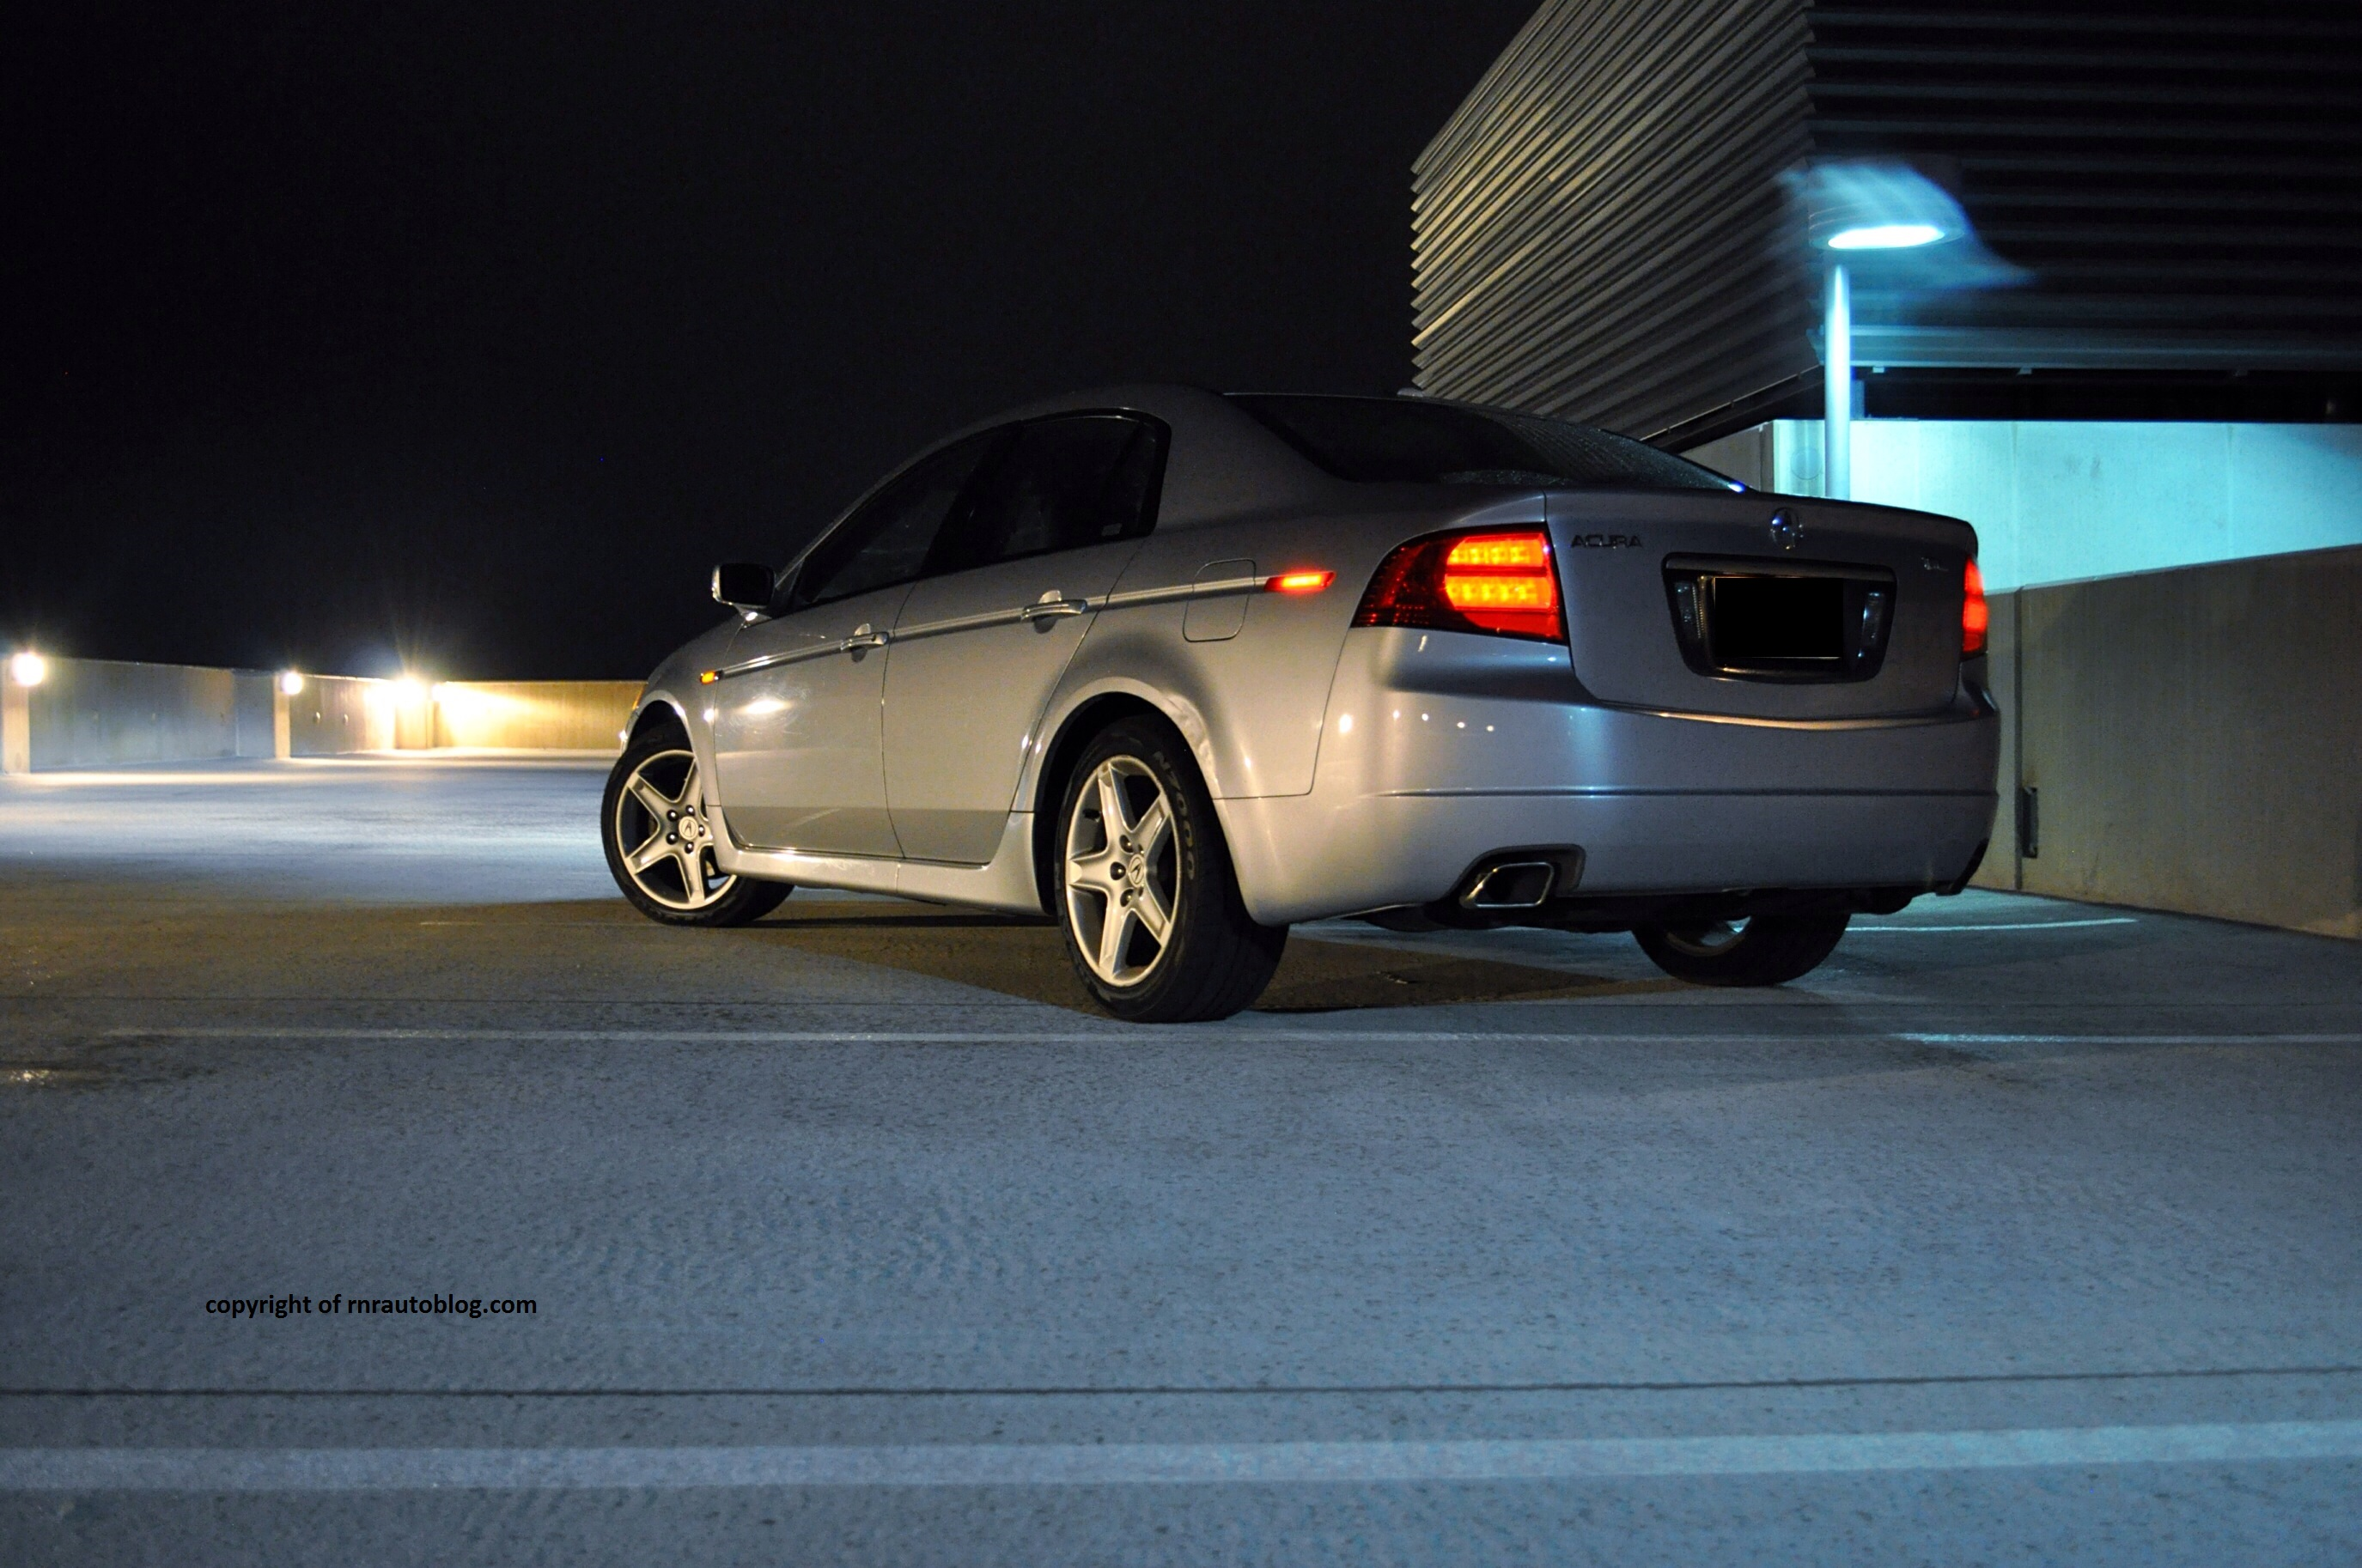 sale for on design ideas tl cars wallpaper specs elegant with have black new awesome of acura used